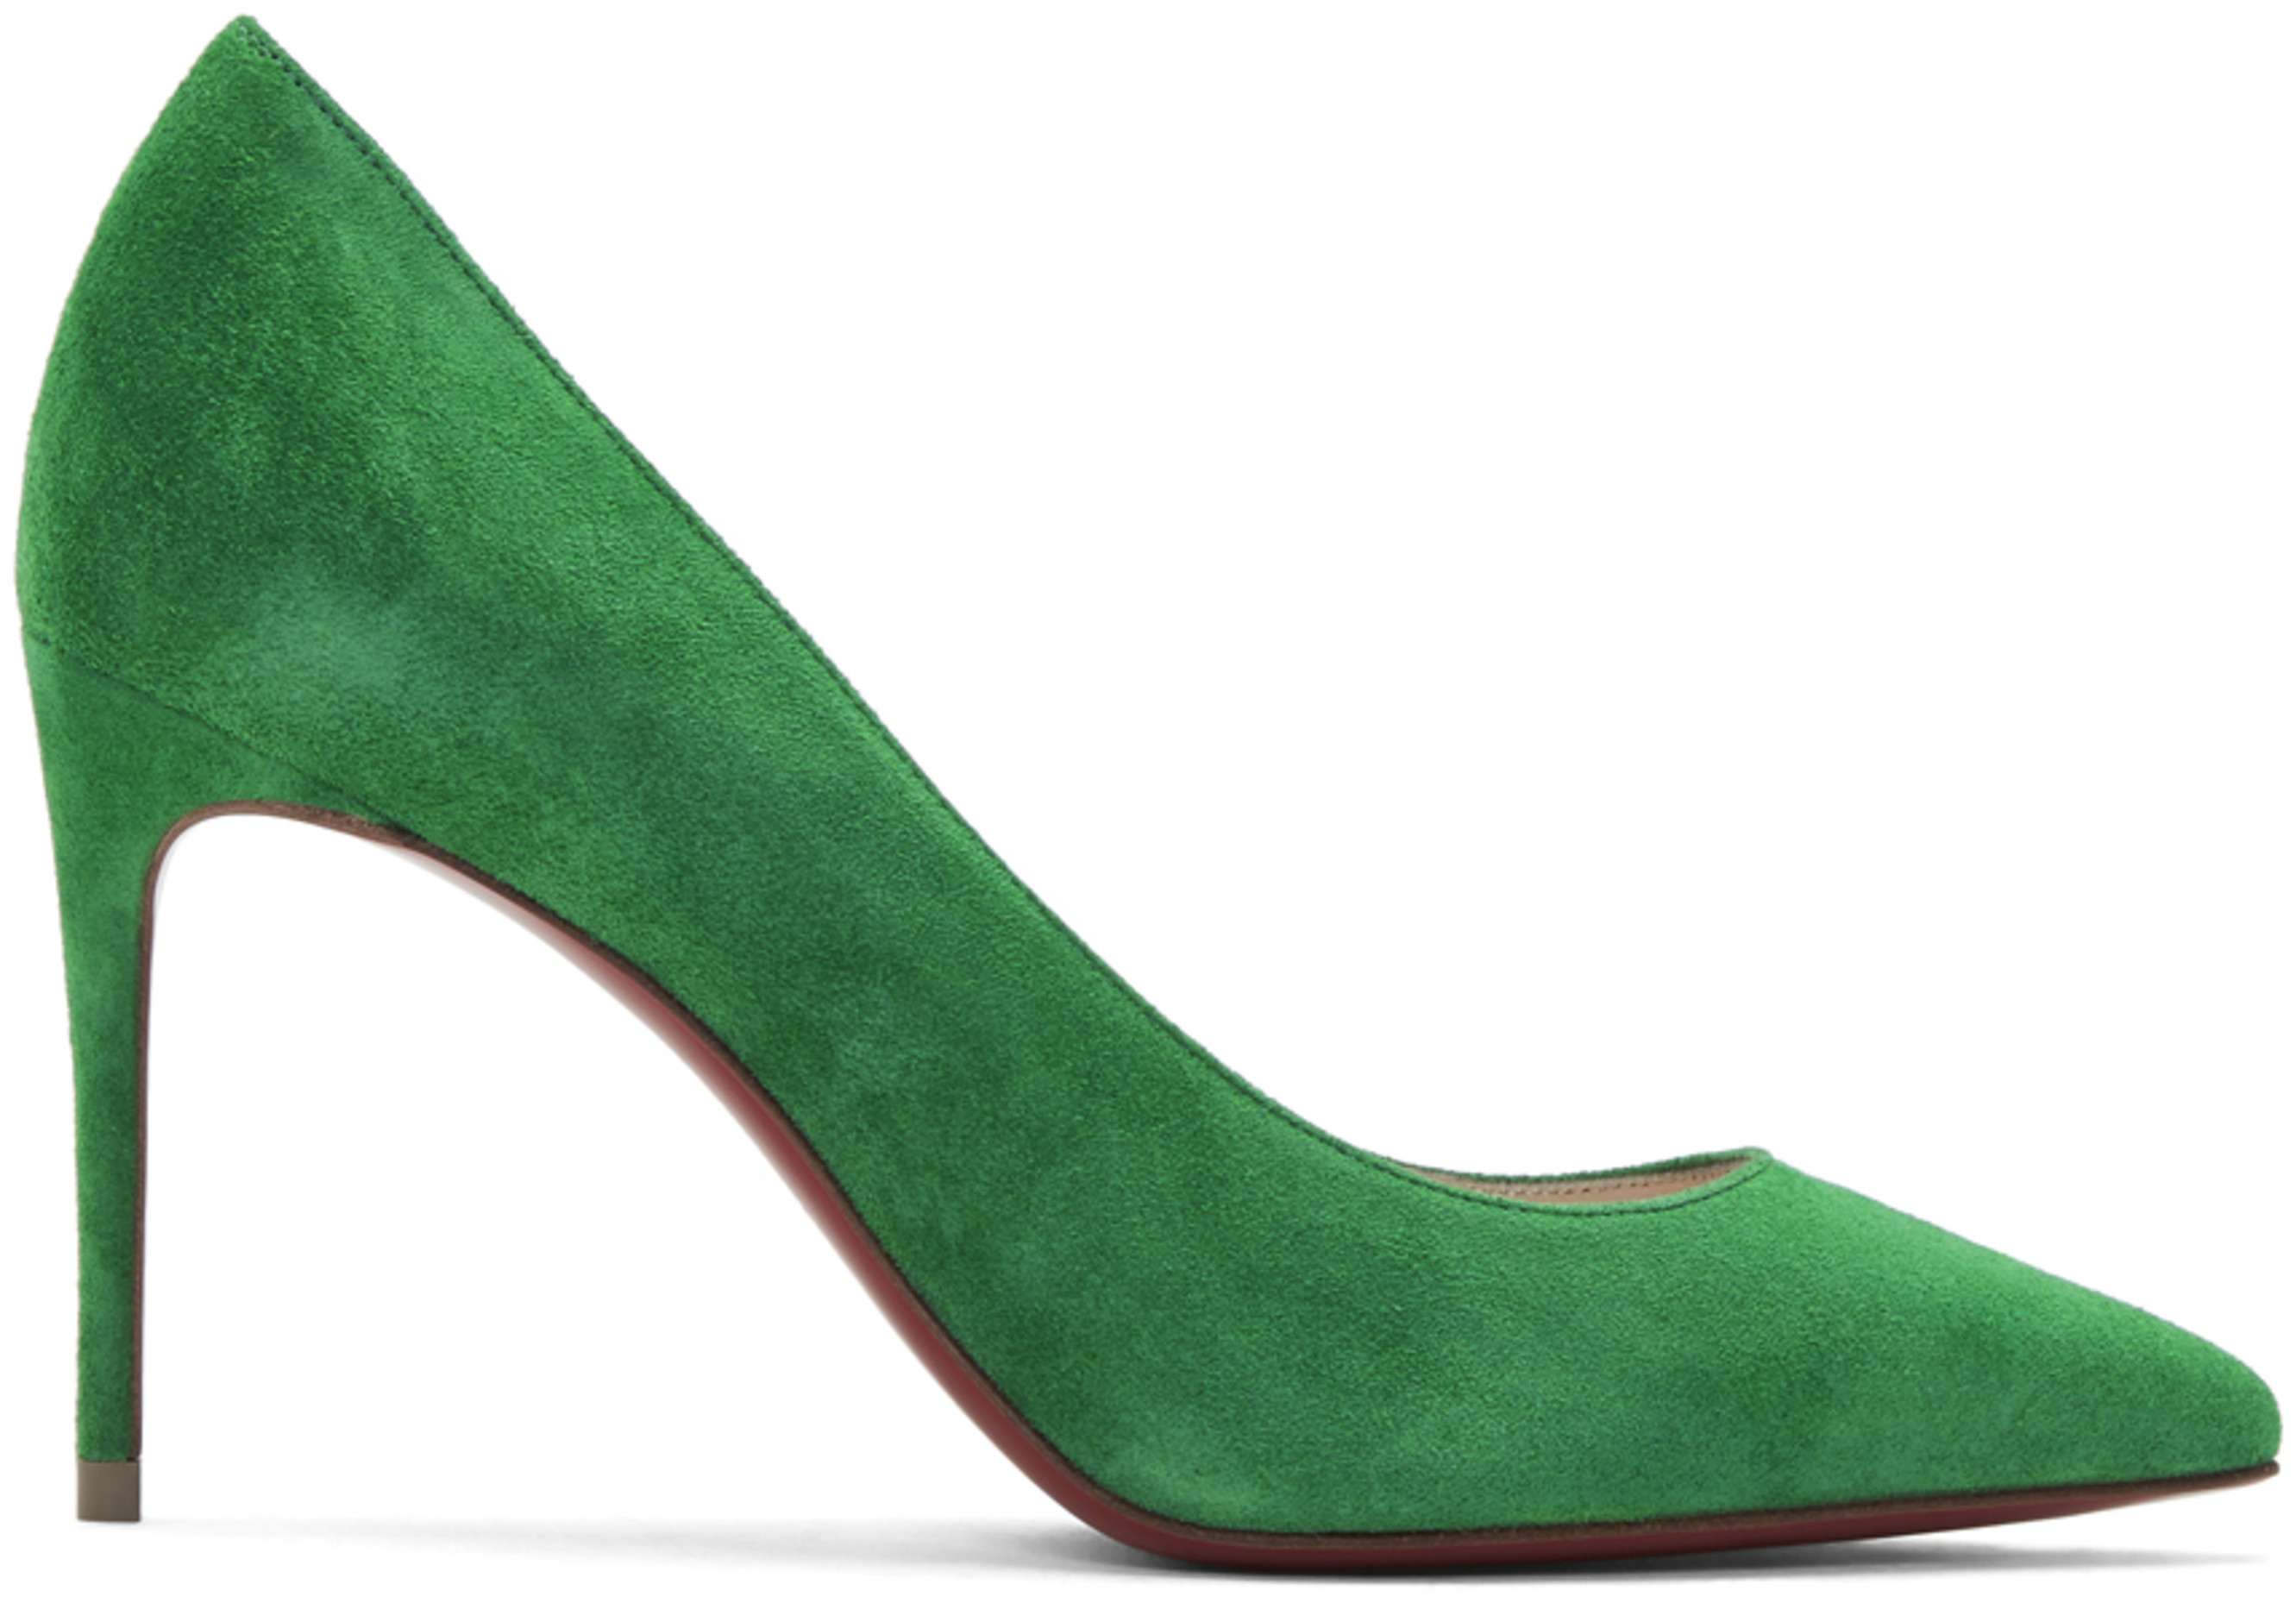 detailed look be69f e5d63 Green Velour Suede Kate 85 Heels